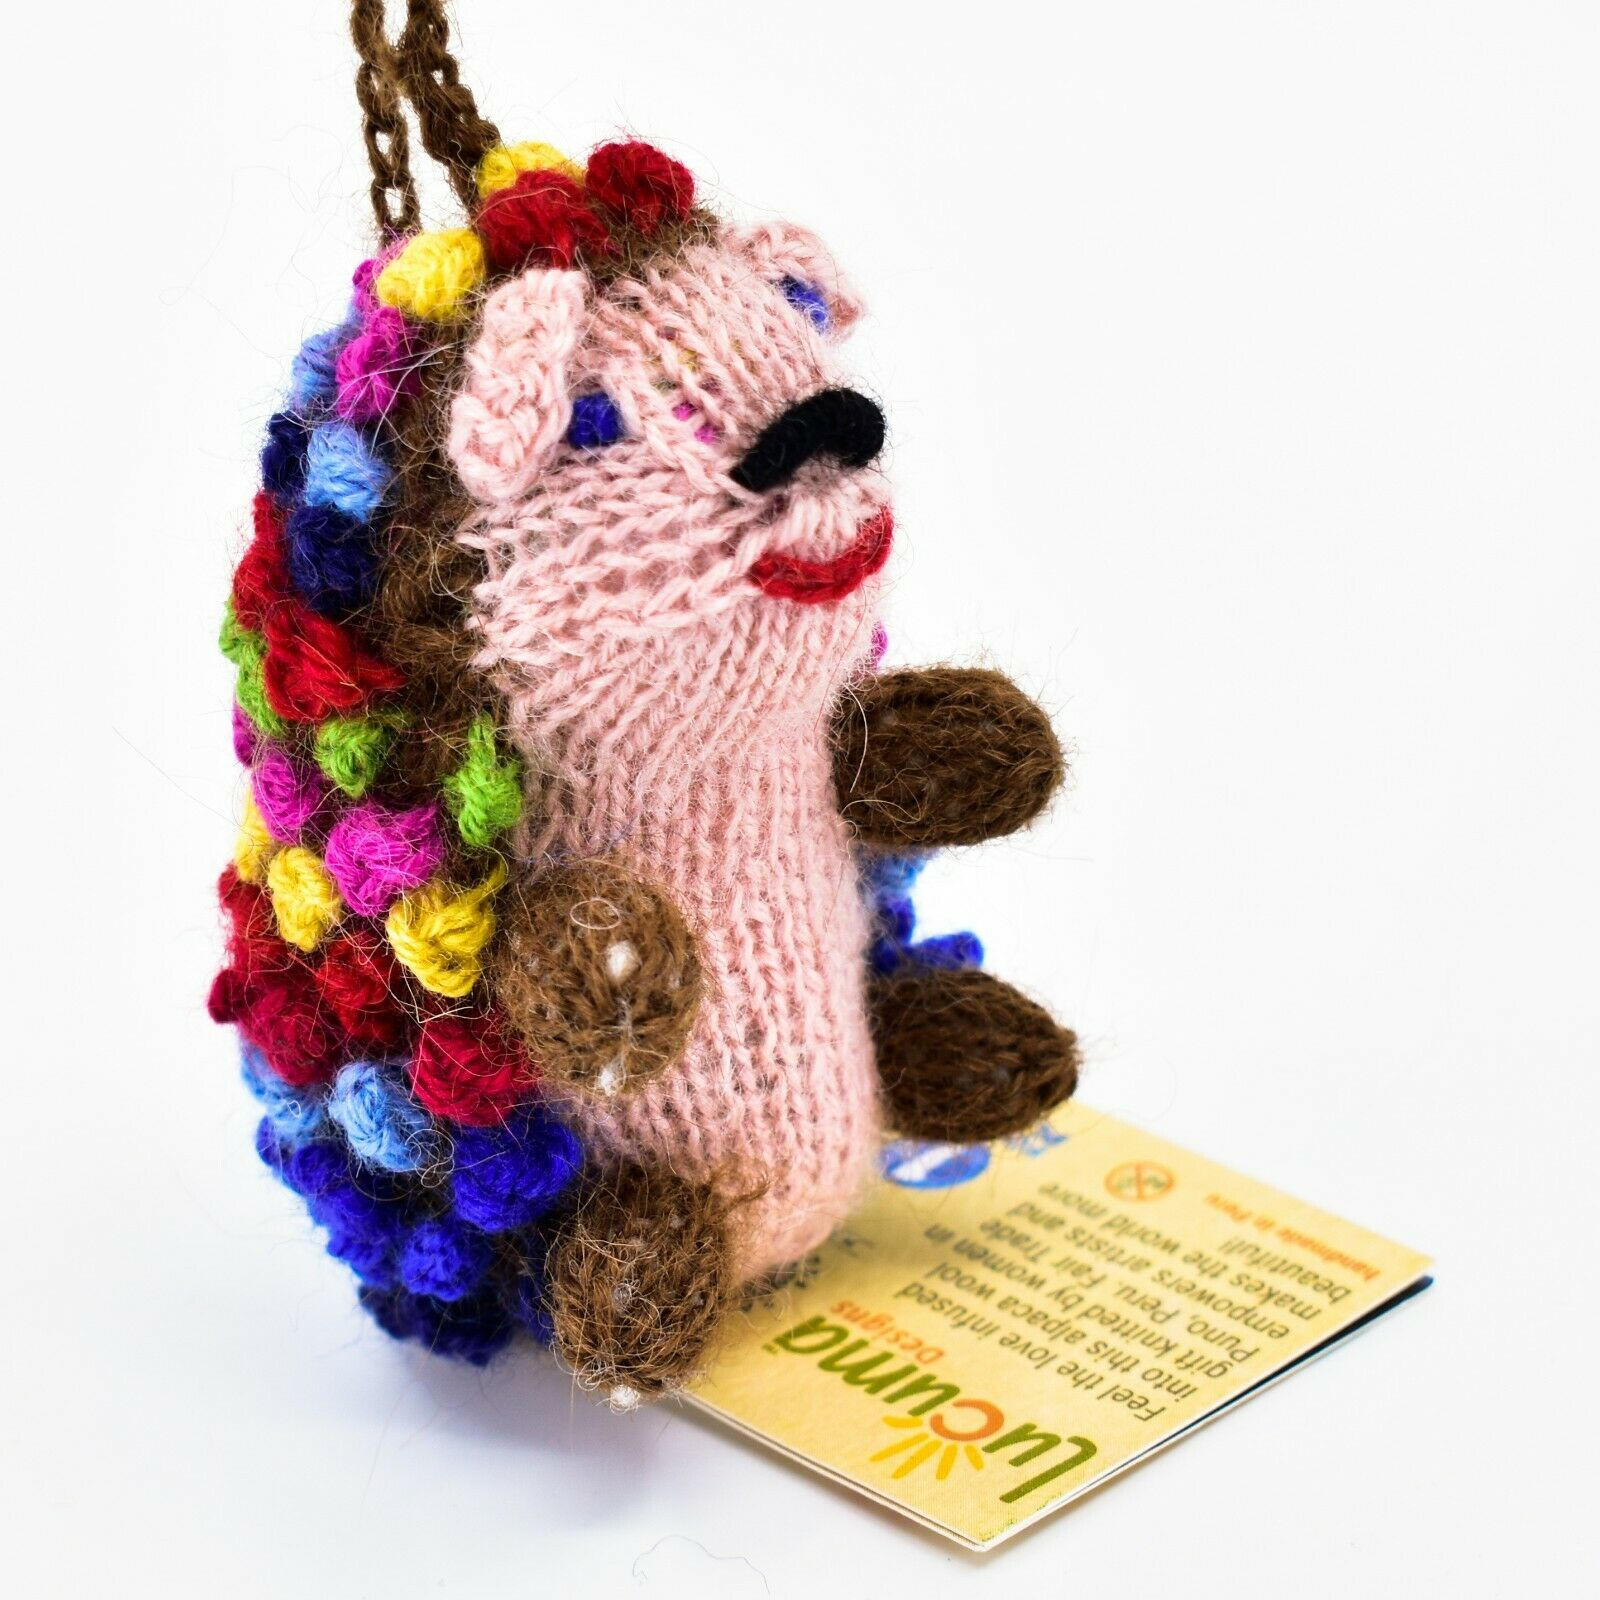 Handknit Alpaca Wool Whimsical Hanging Porcupine Ornament Handmade in Peru